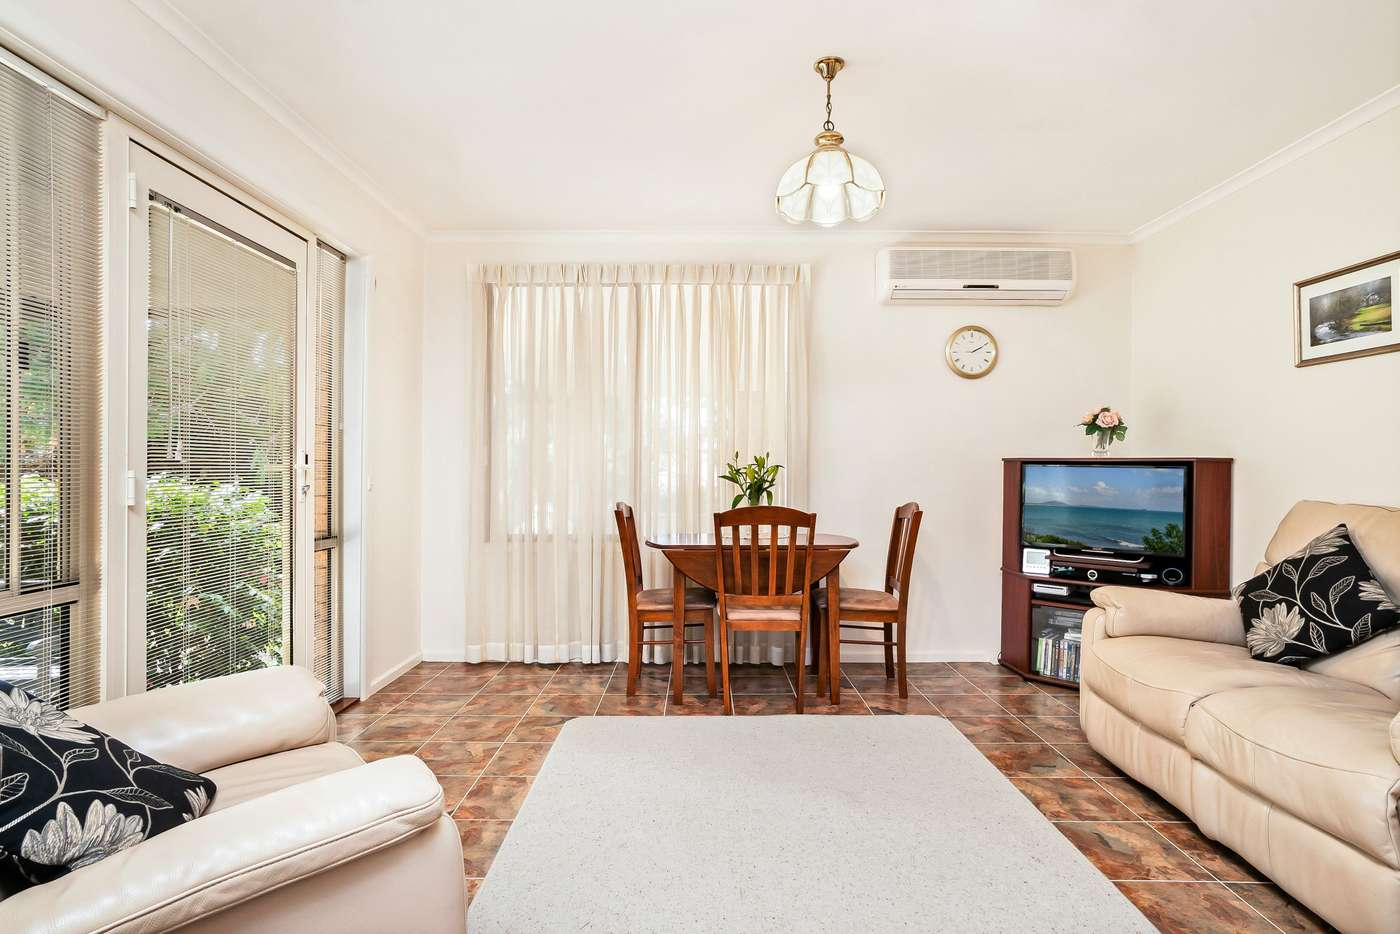 Sixth view of Homely house listing, 144 Chapel Lane, Baulkham Hills NSW 2153